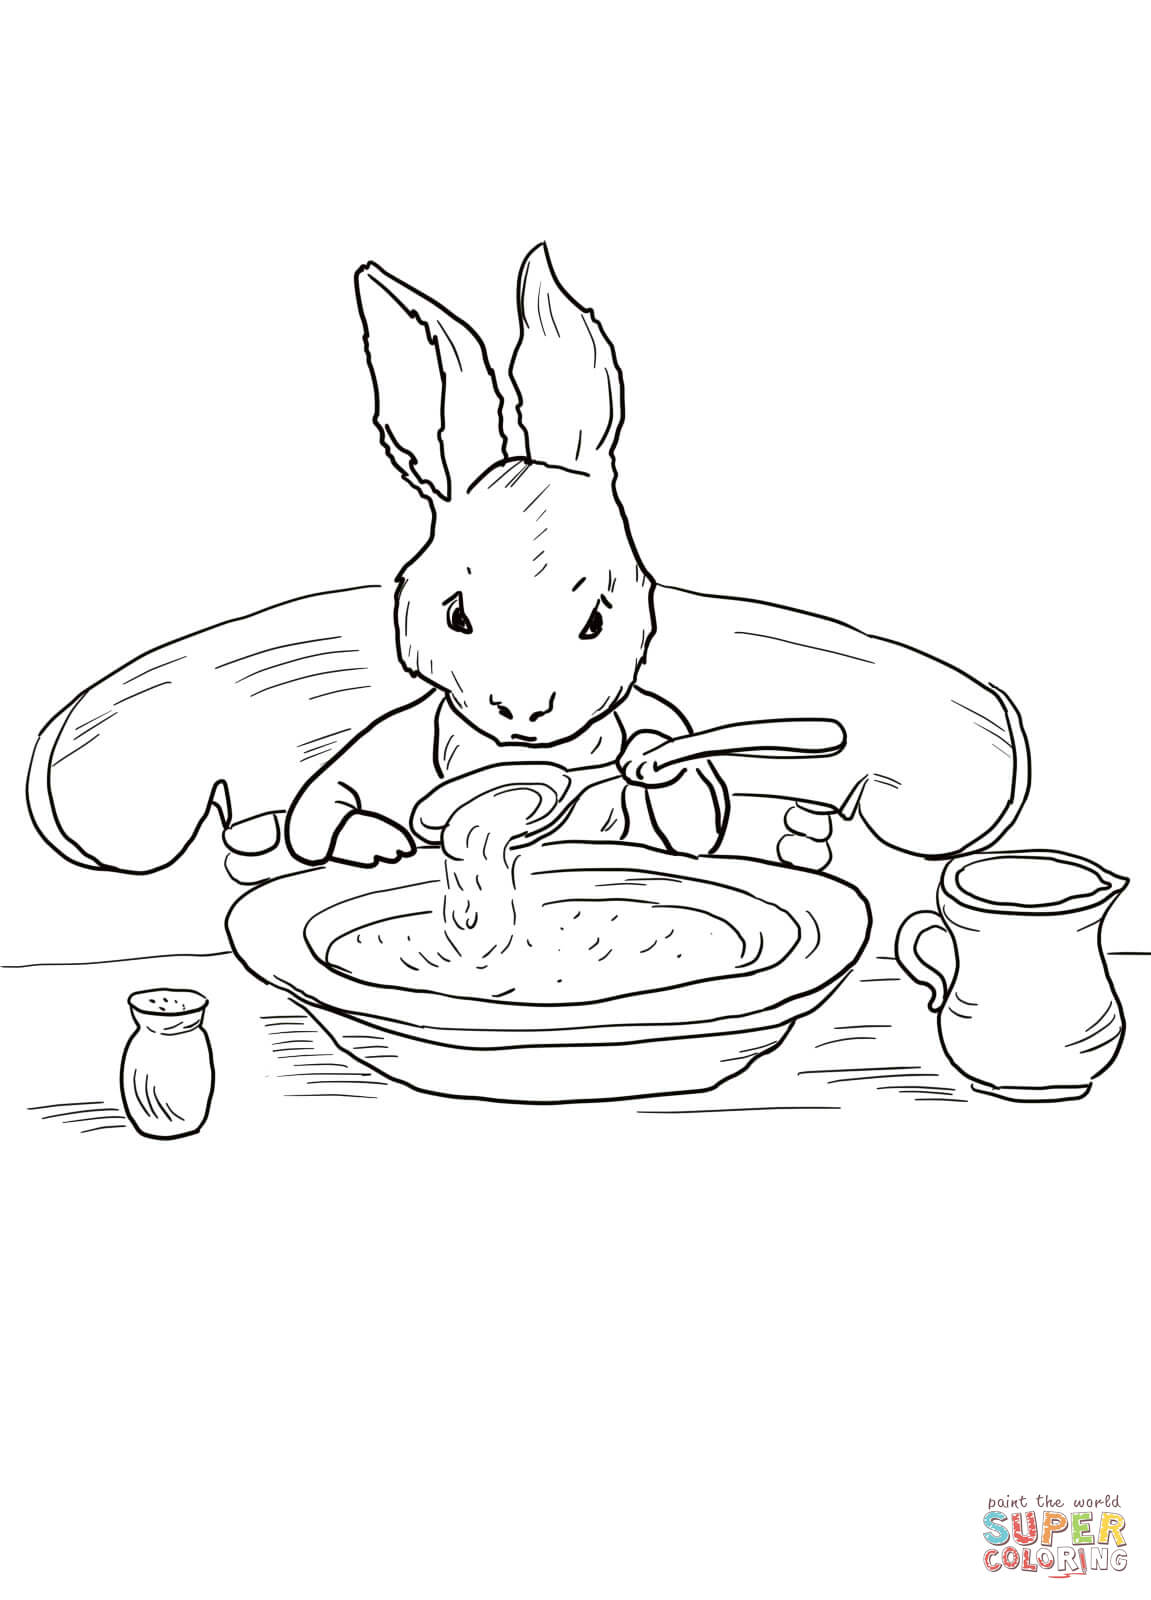 Peter Rabbit At Home Coloring Page